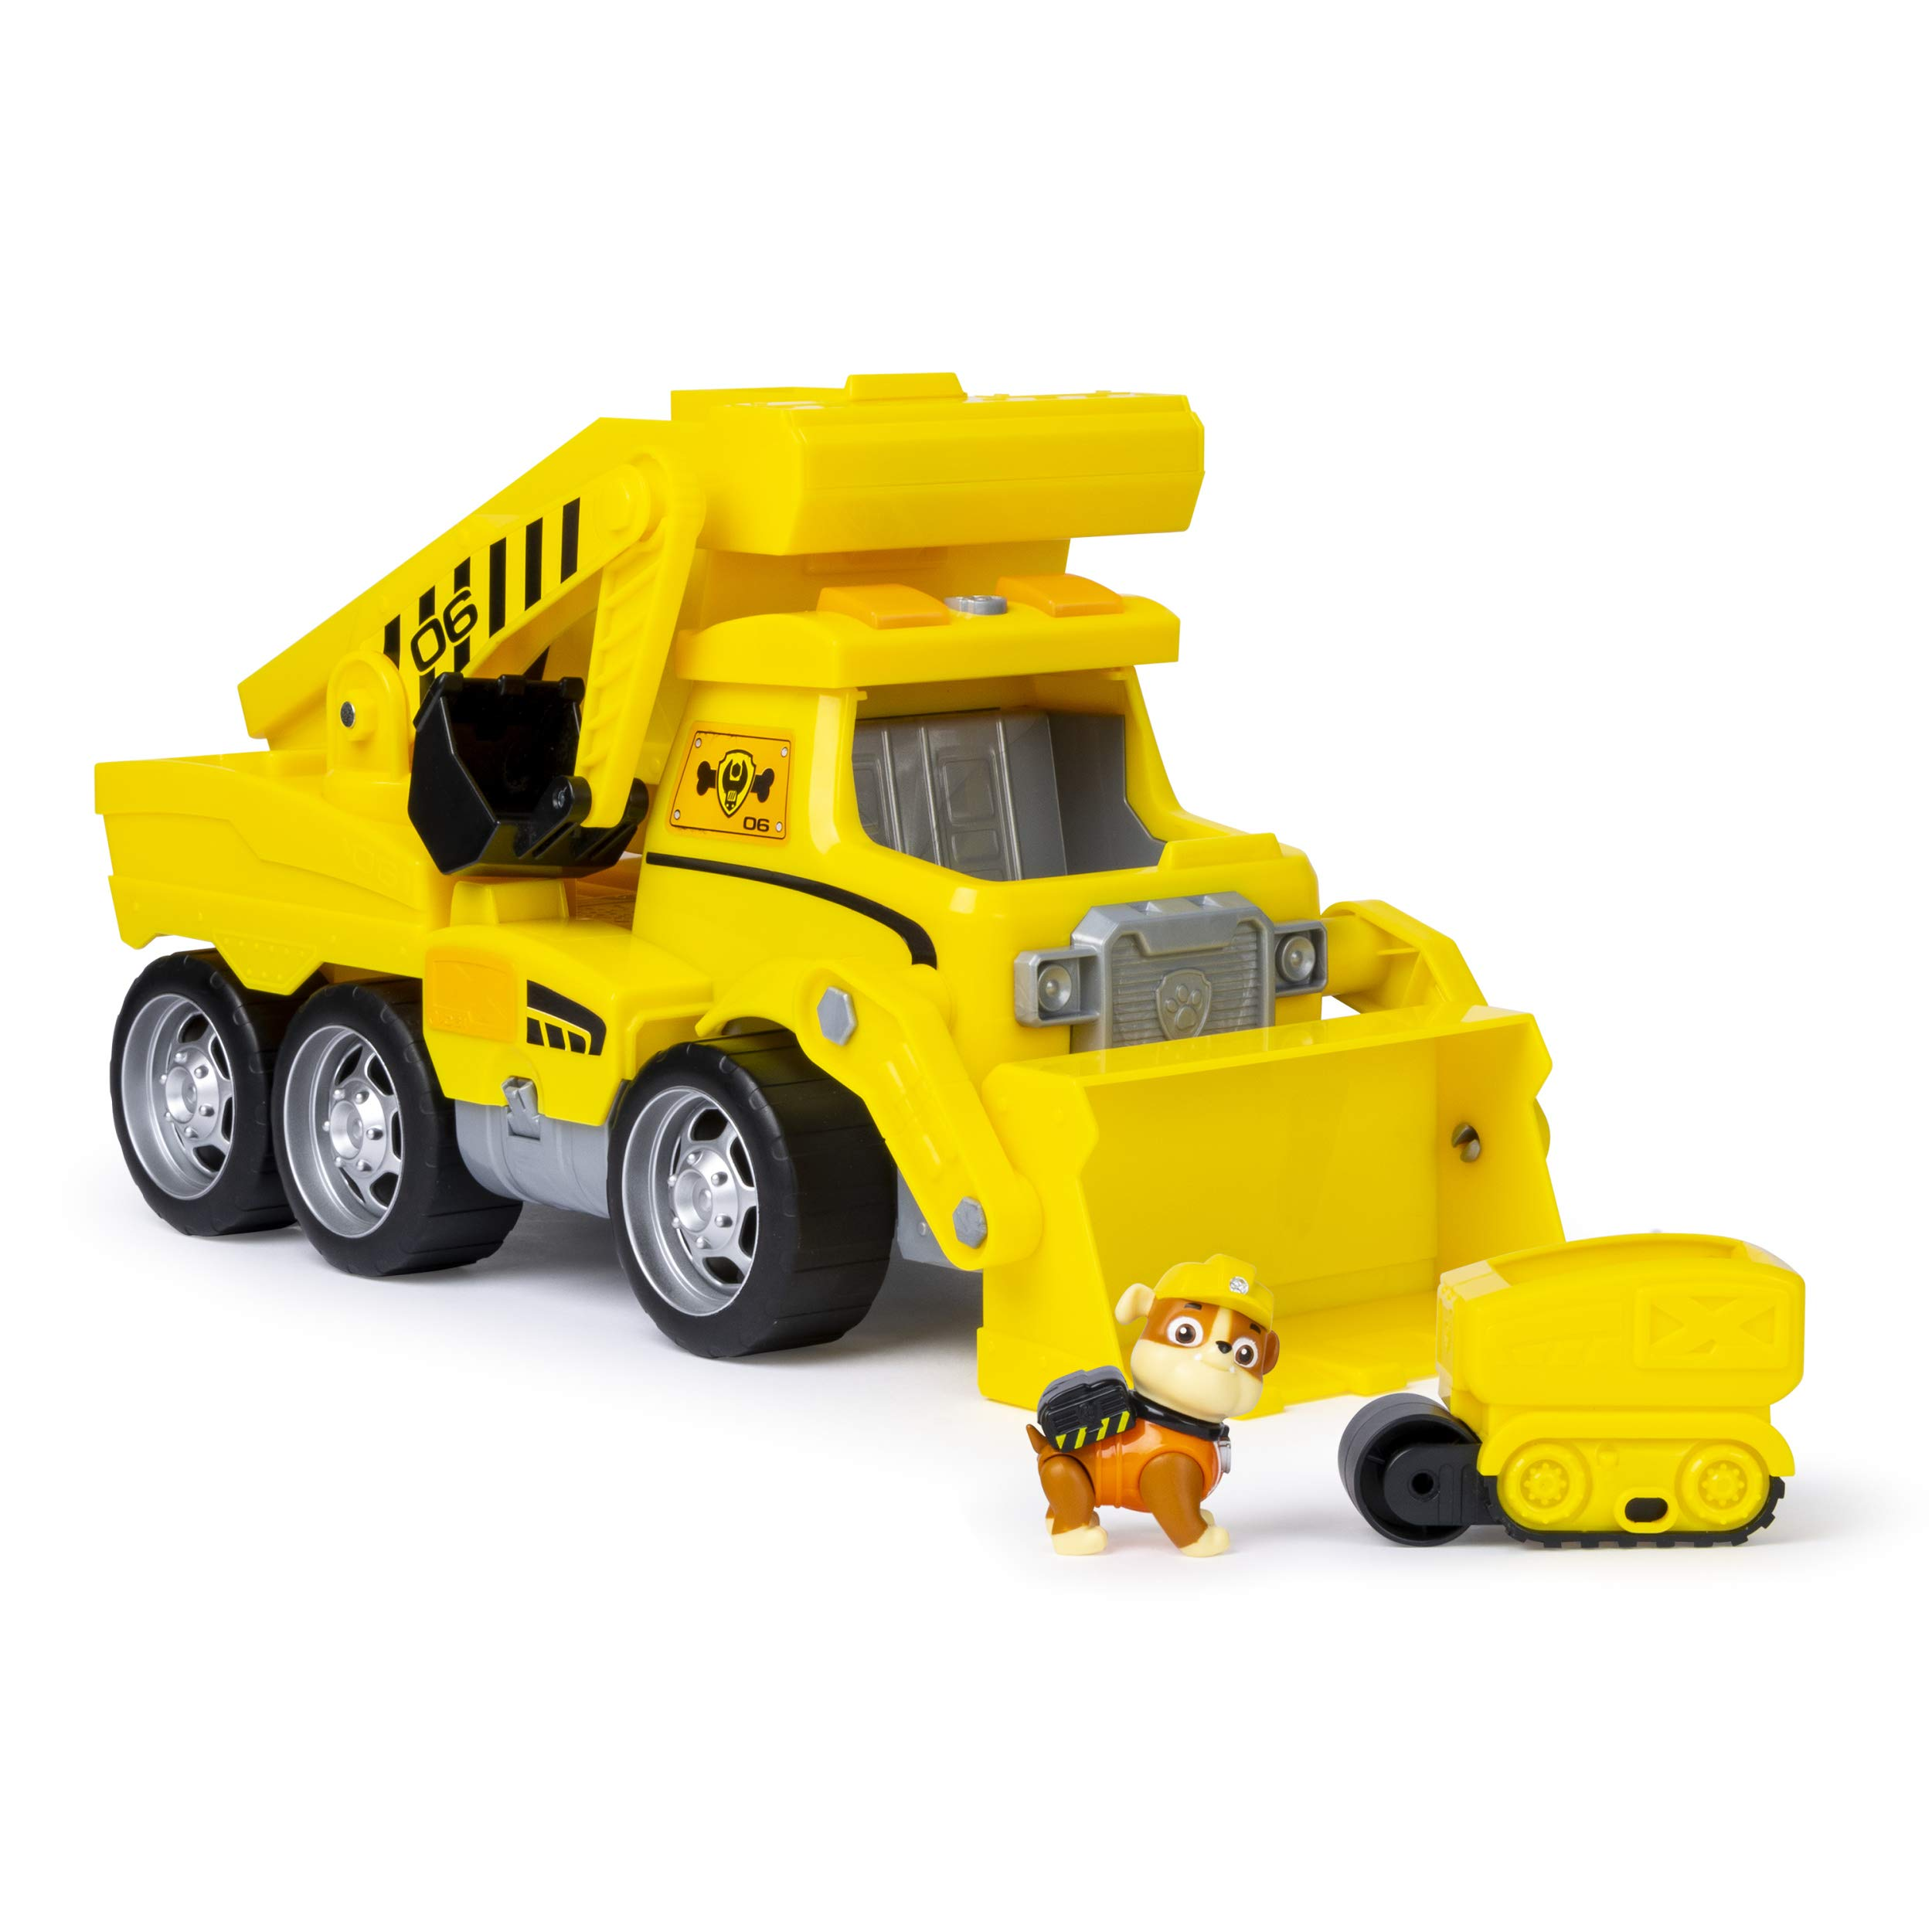 Paw Patrol, Ultimate Rescue Construction Truck with Lights, Sound & Mini Vehicle, for Ages 3 & Up by Paw Patrol